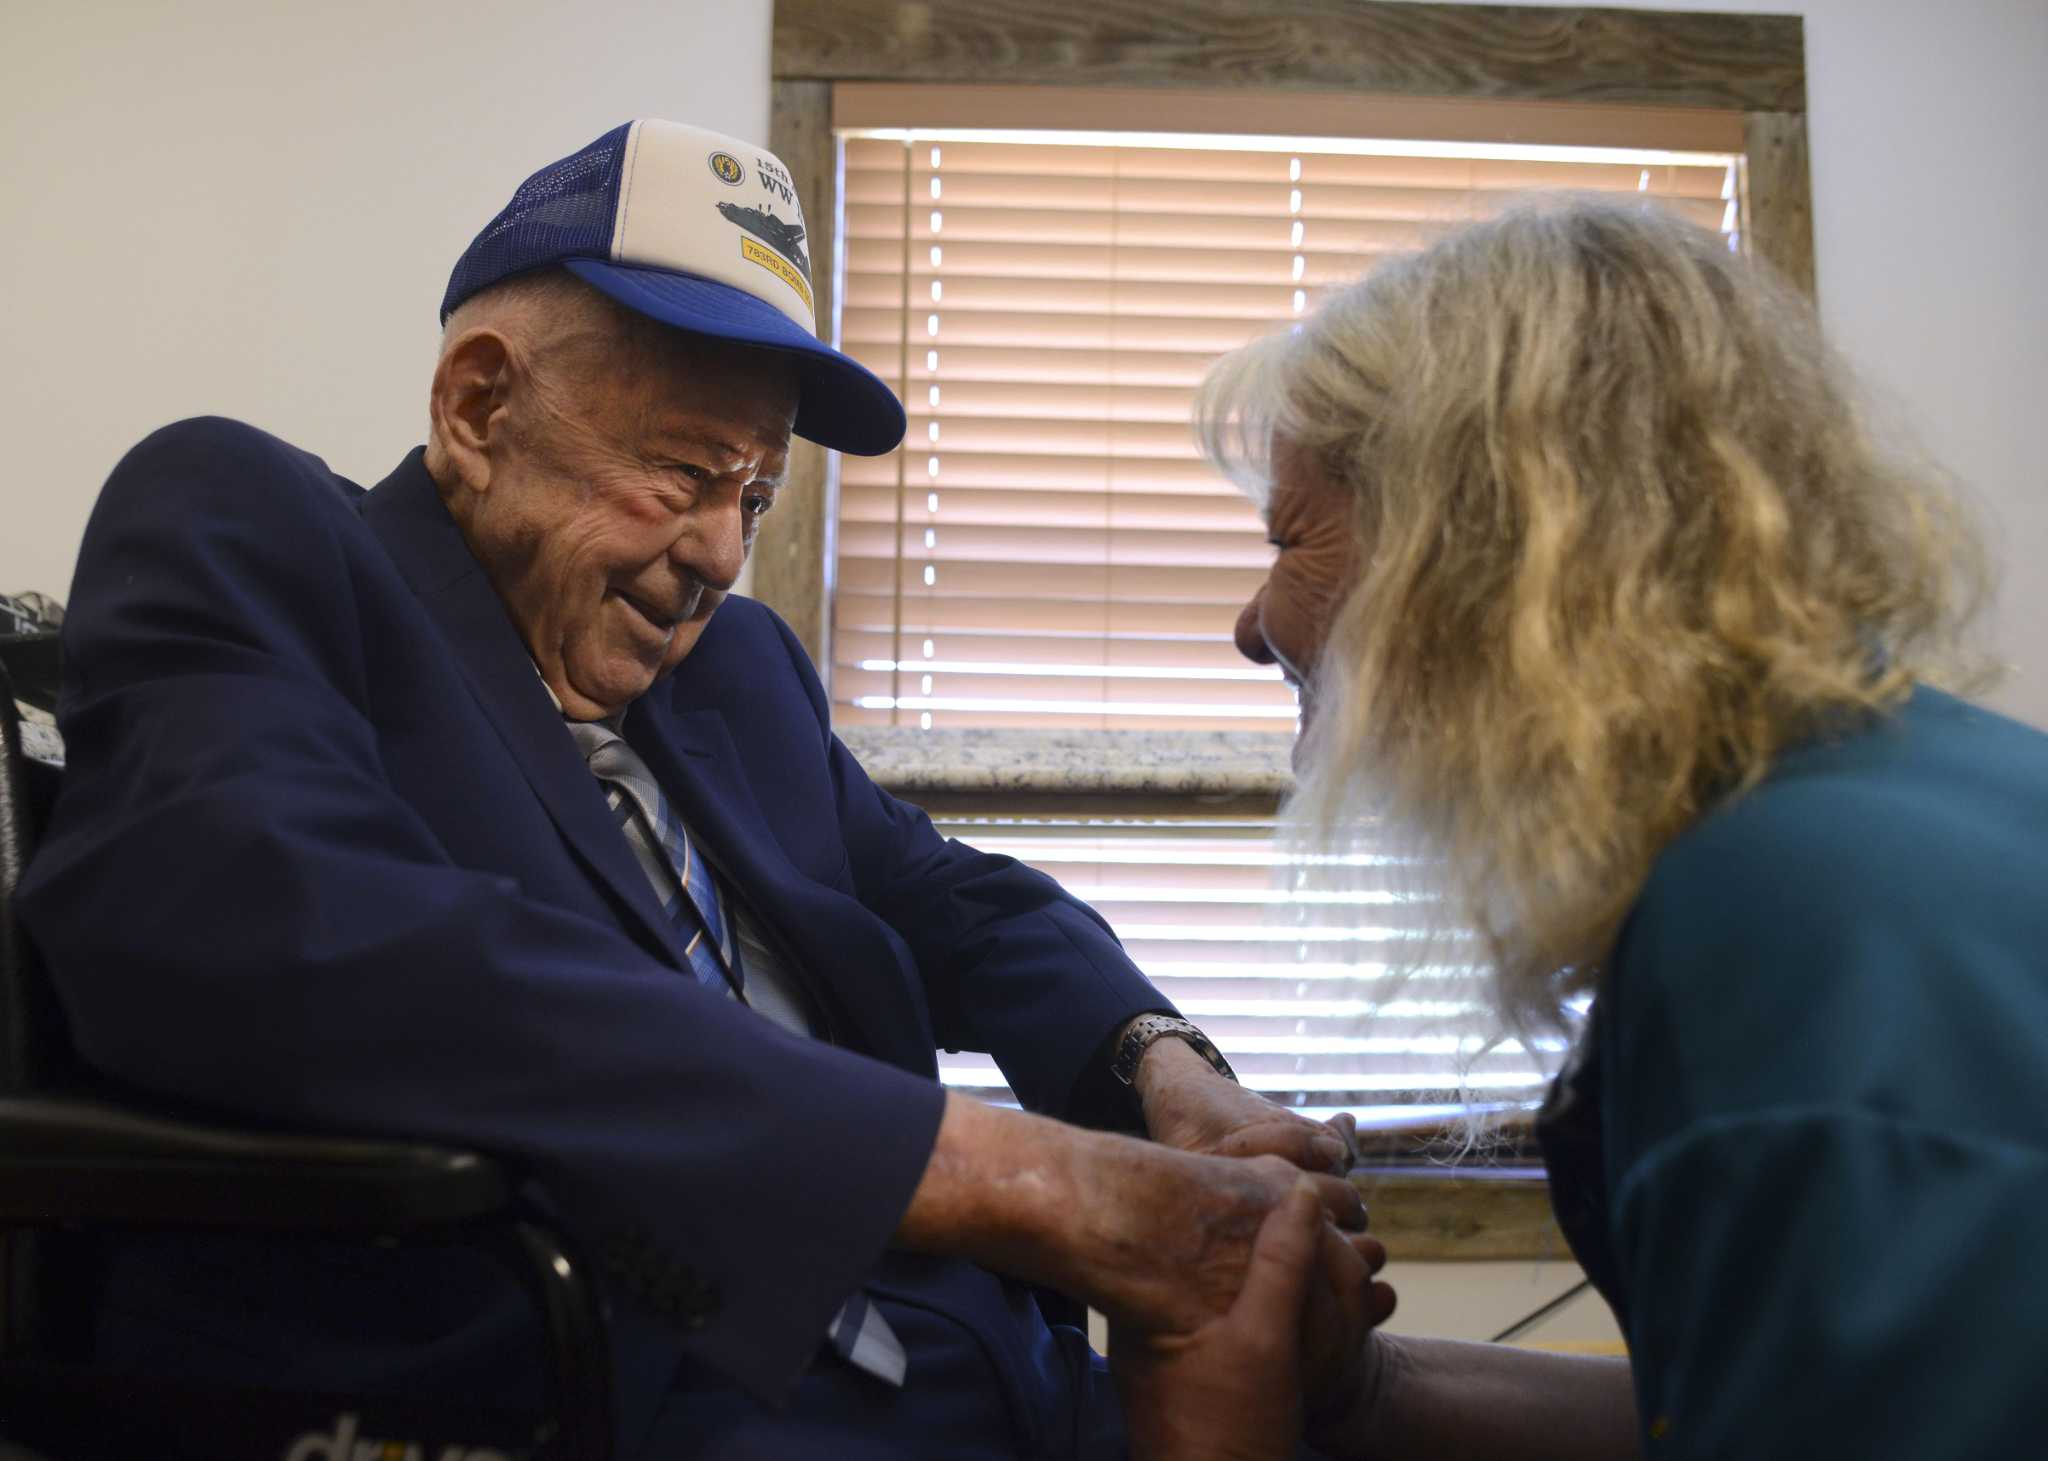 On 100th Birthday Bombardier Looks Back His Lucky Day